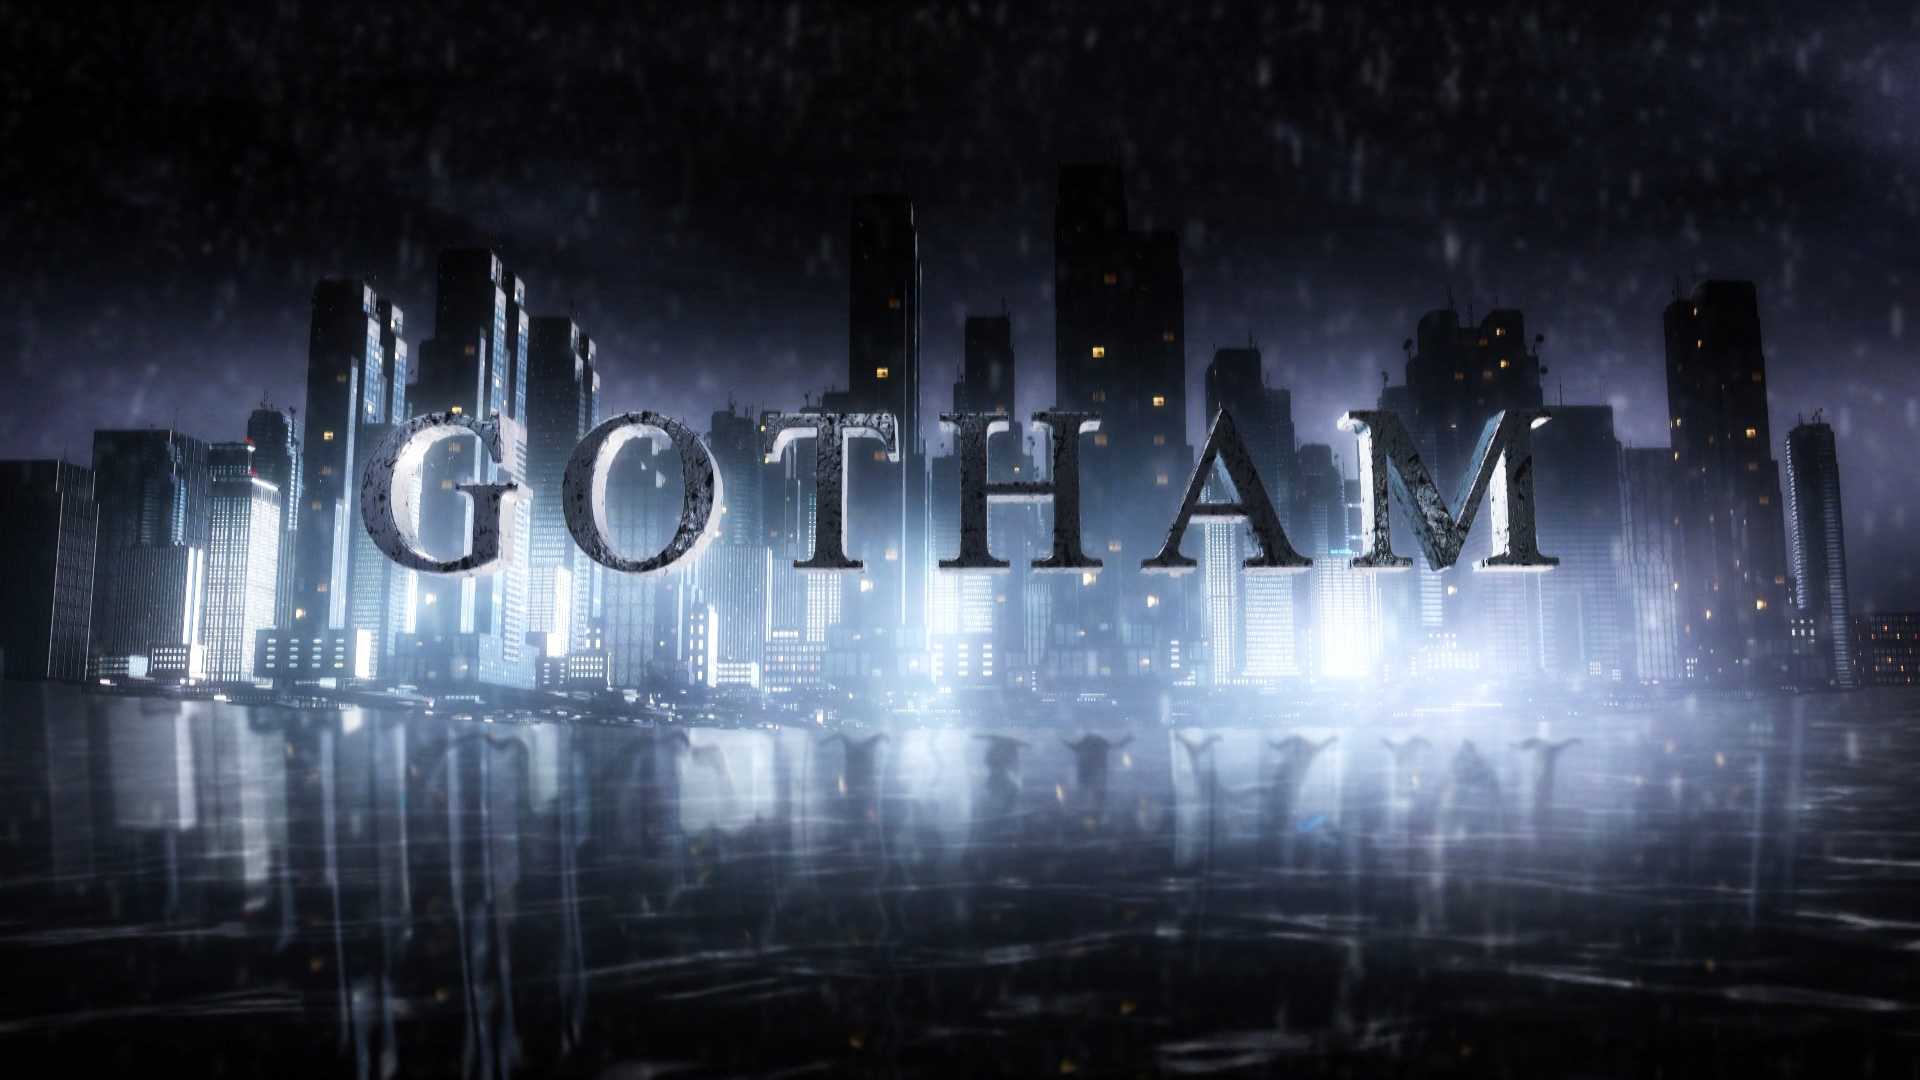 Fall Watch Wallpapers Gotham Is A Questionable Watch For Fans Of The Batman